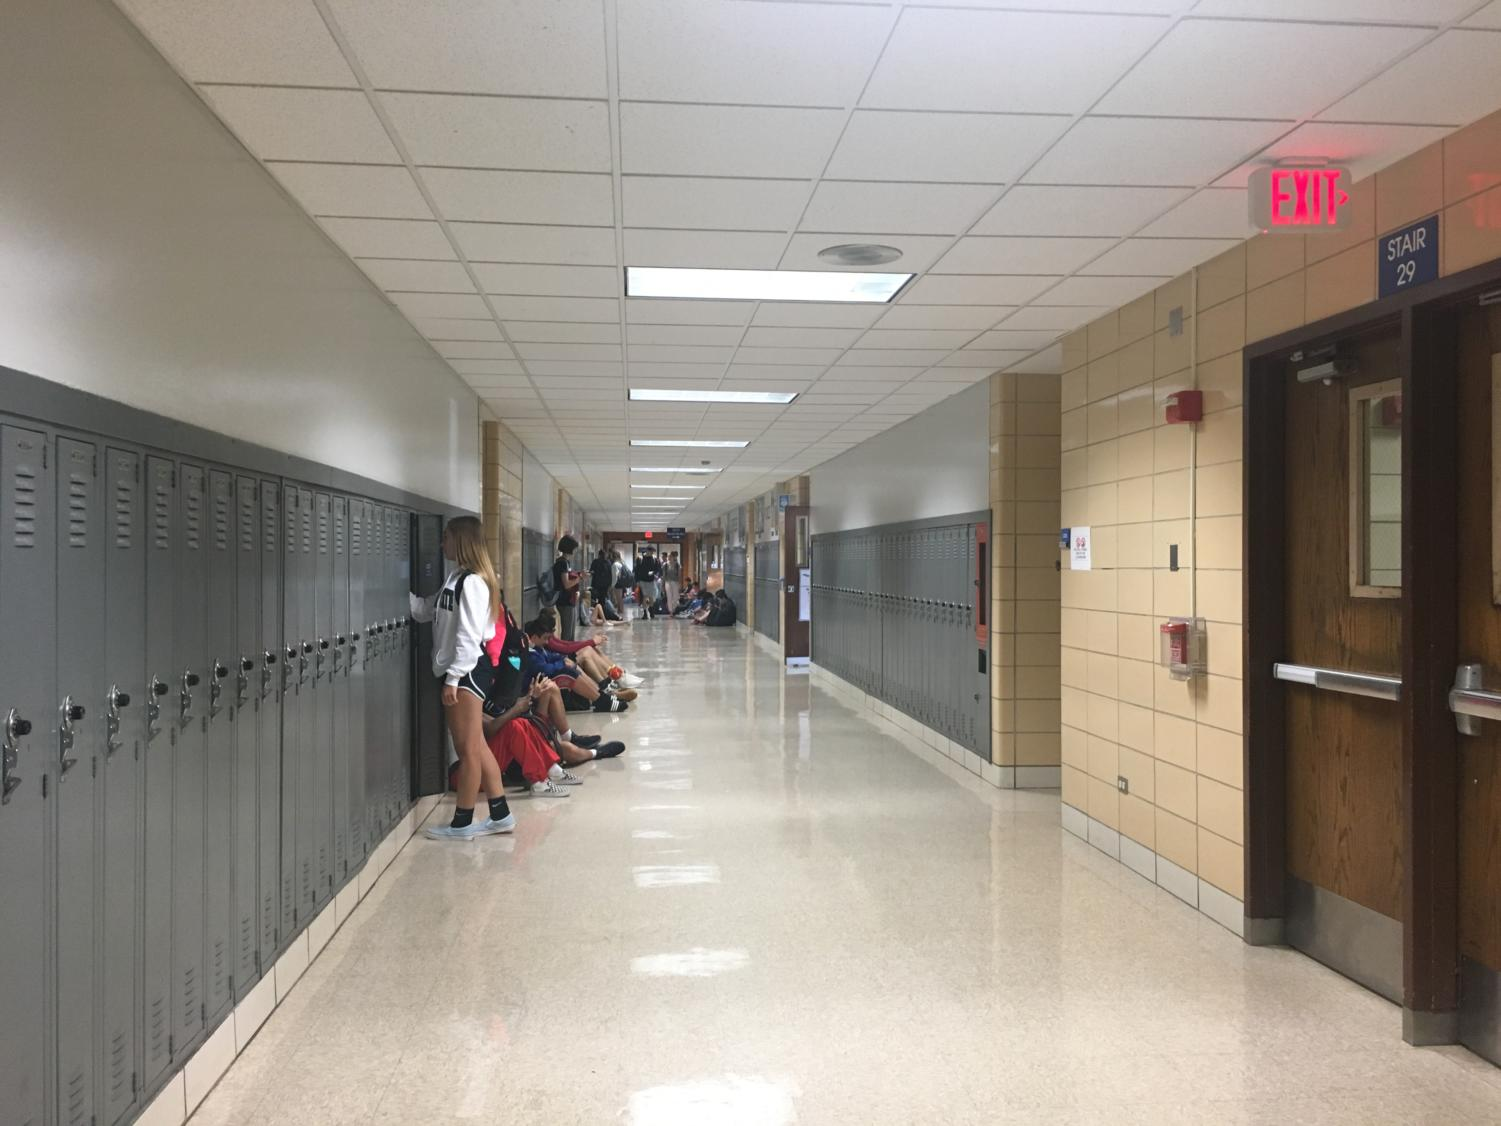 The hallways are empty in the morning at about 7:50 a.m. before the music starts at 7:55 a.m.